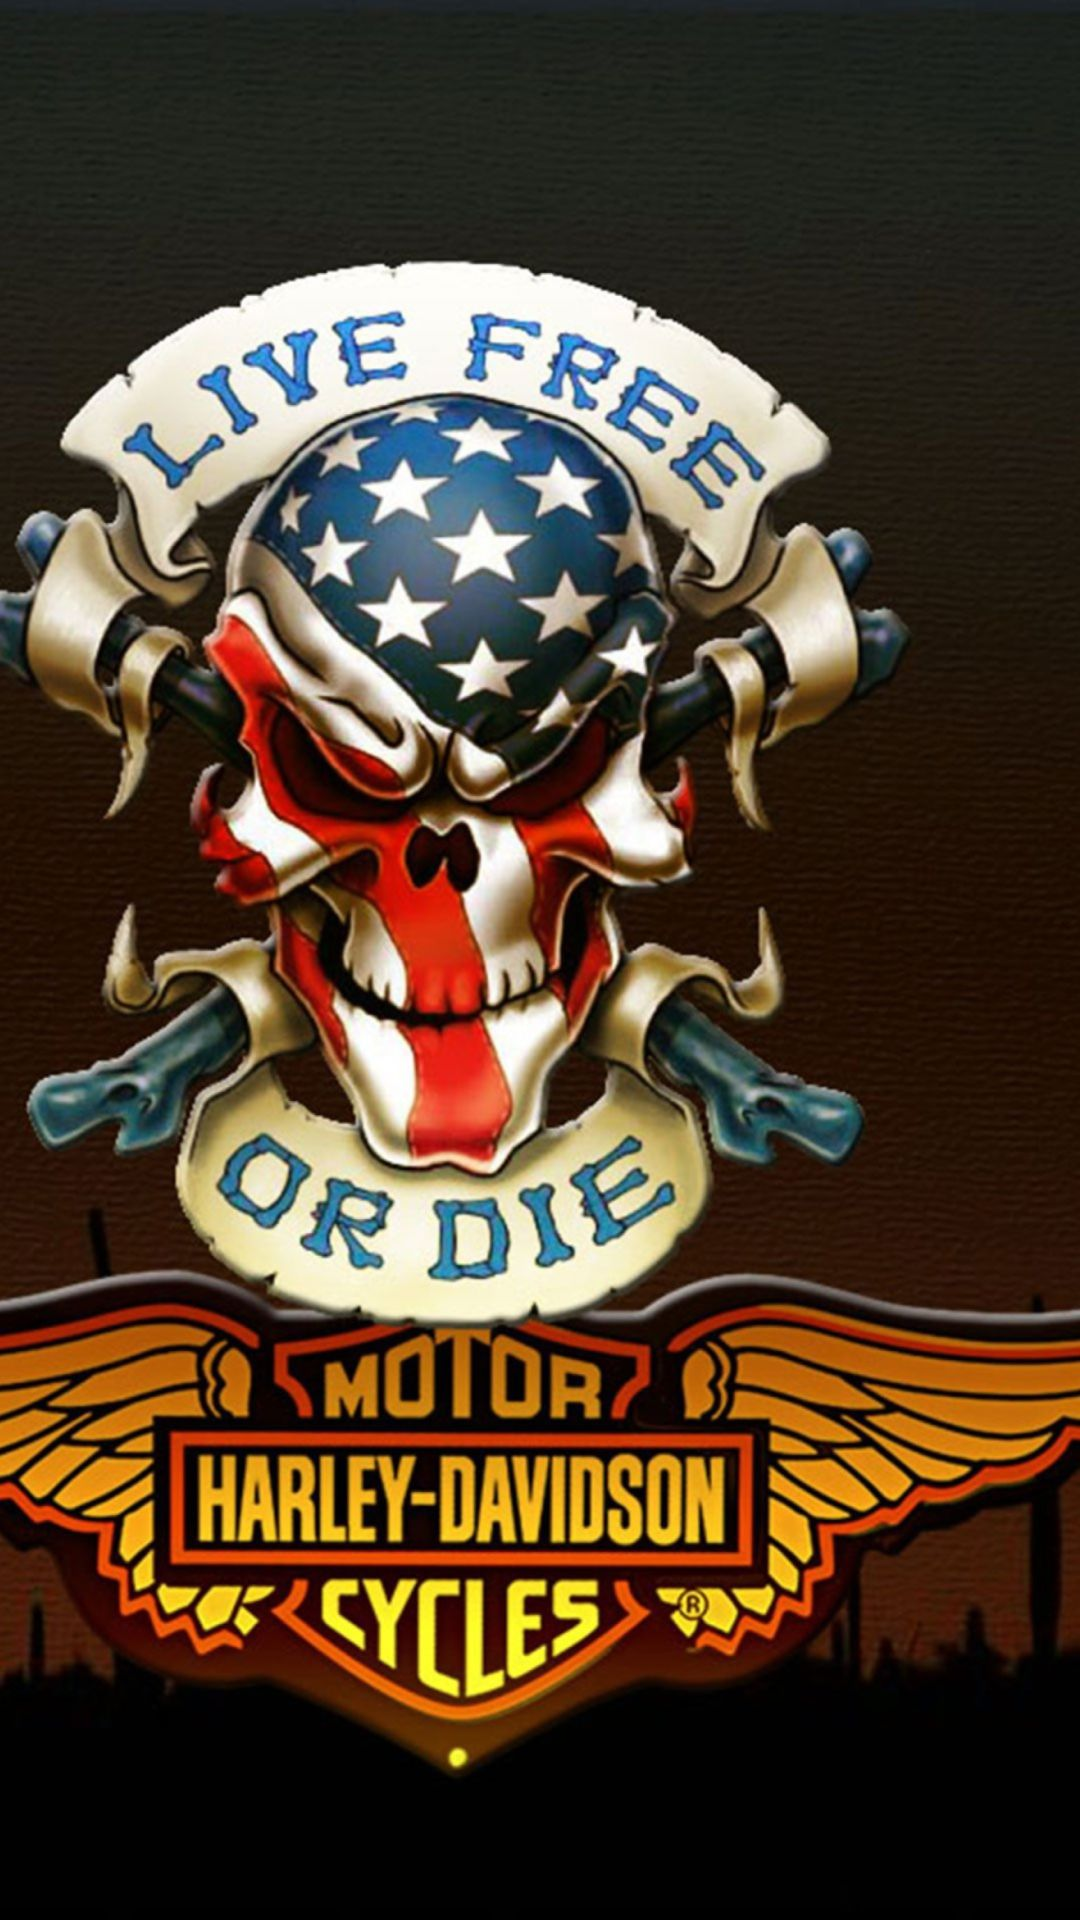 awesome fonddecraniphone7hdwallpaper216 harley